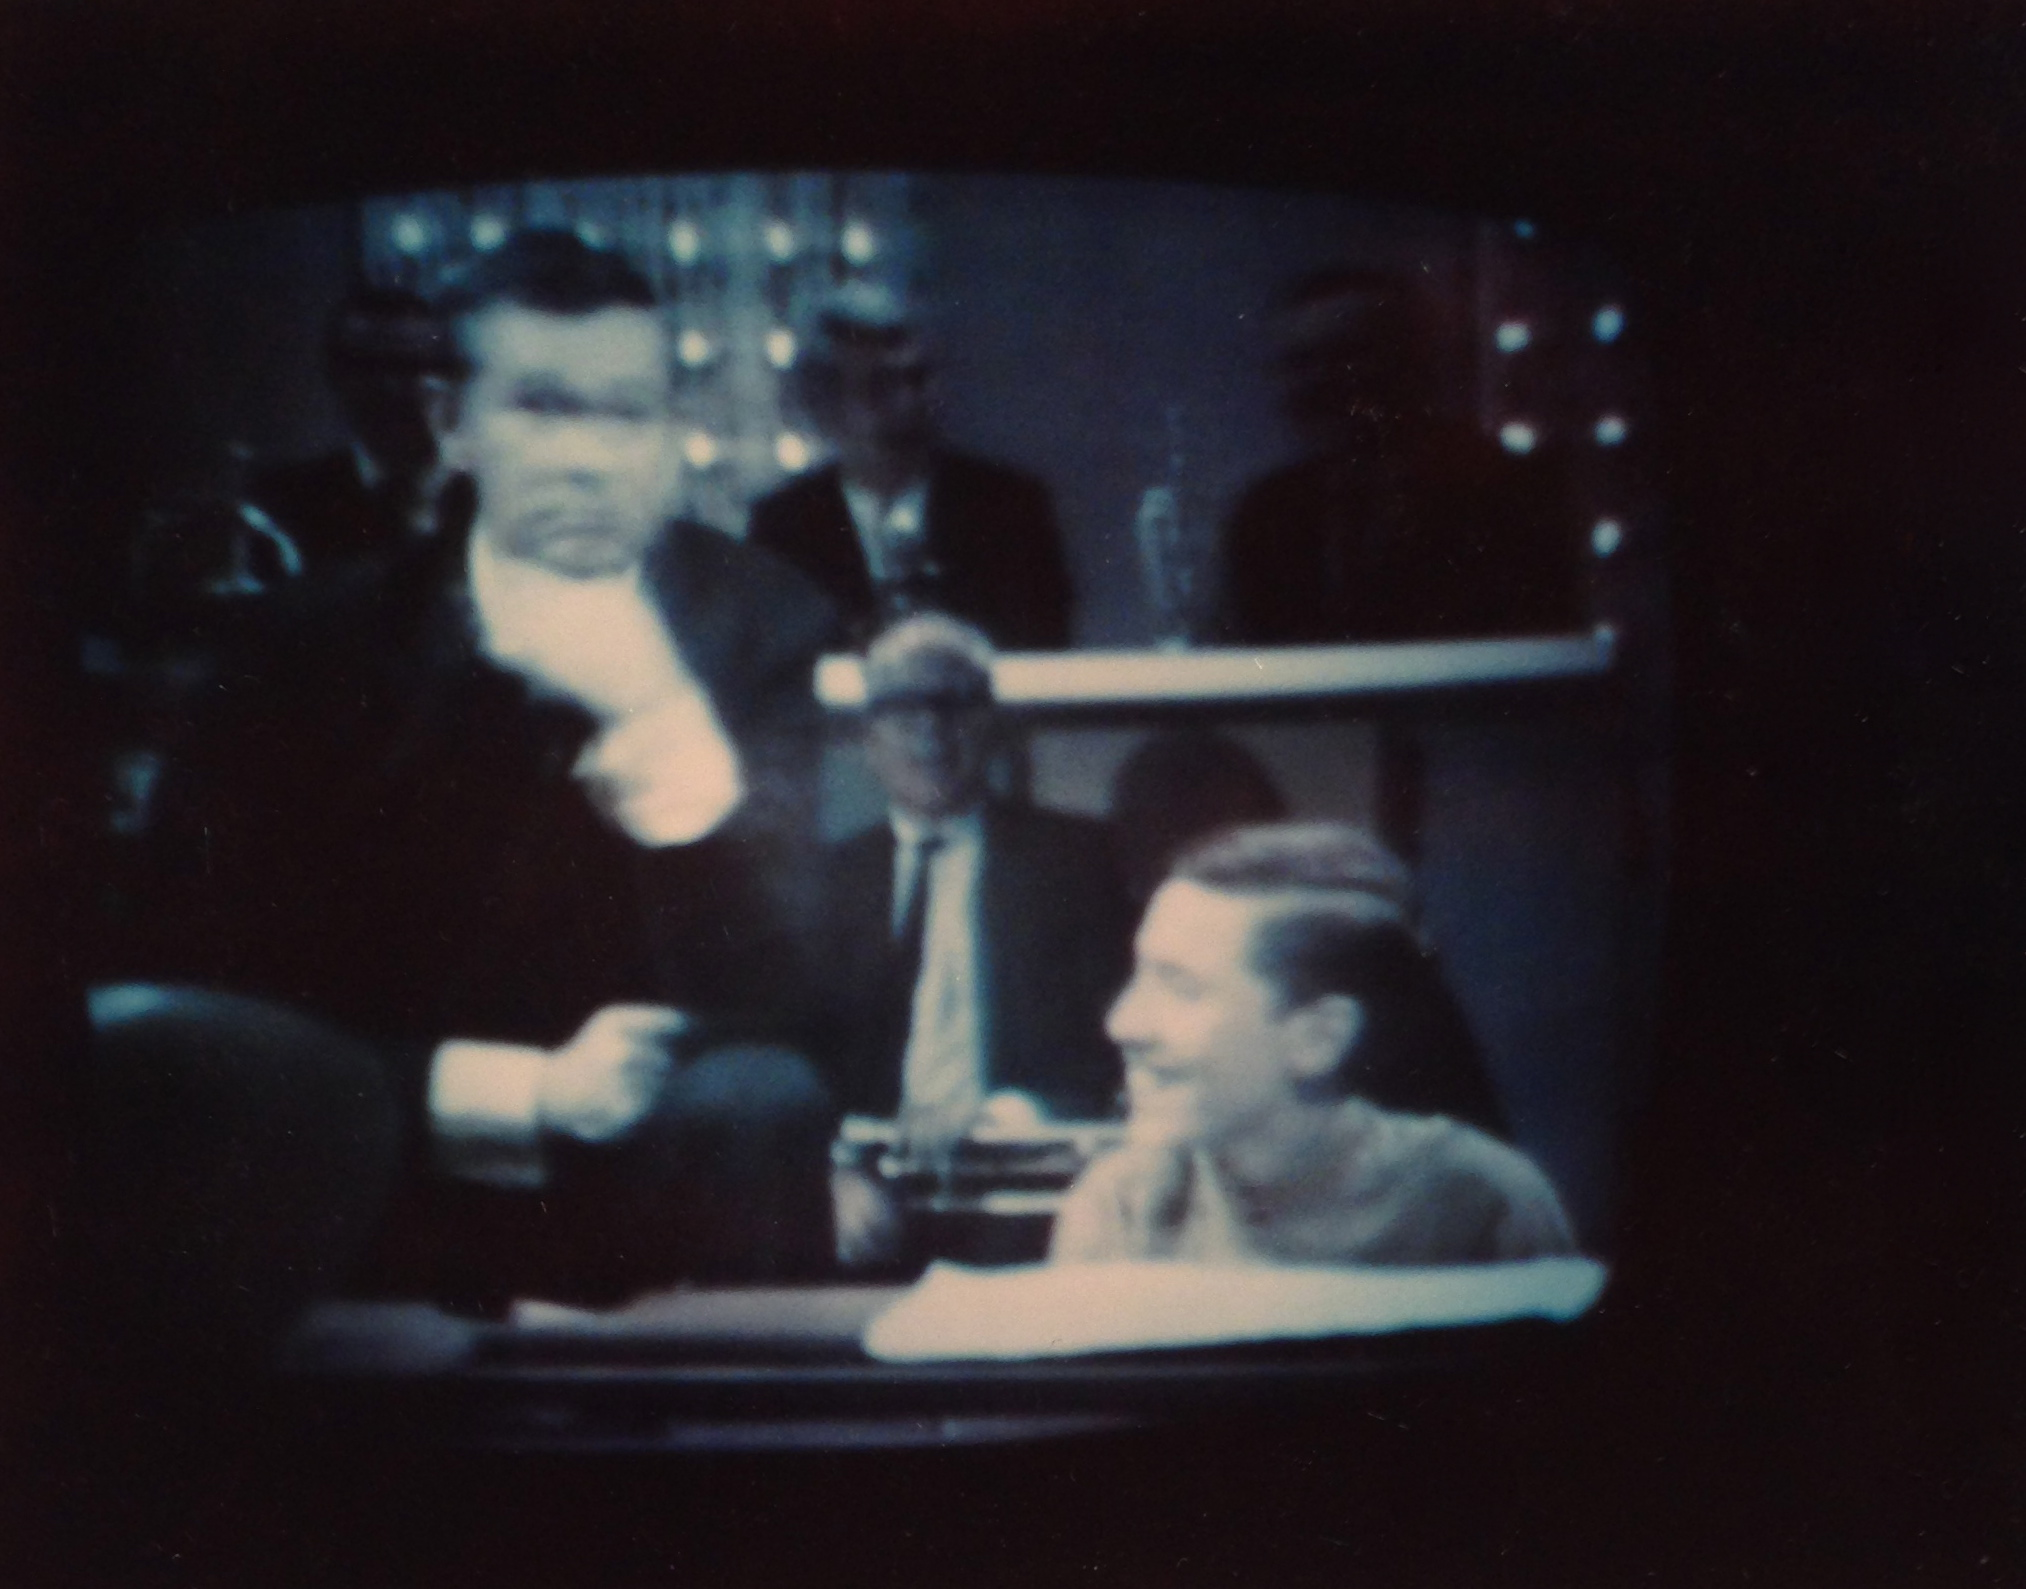 Craig playing on the Tonight Show with Johnny Carson